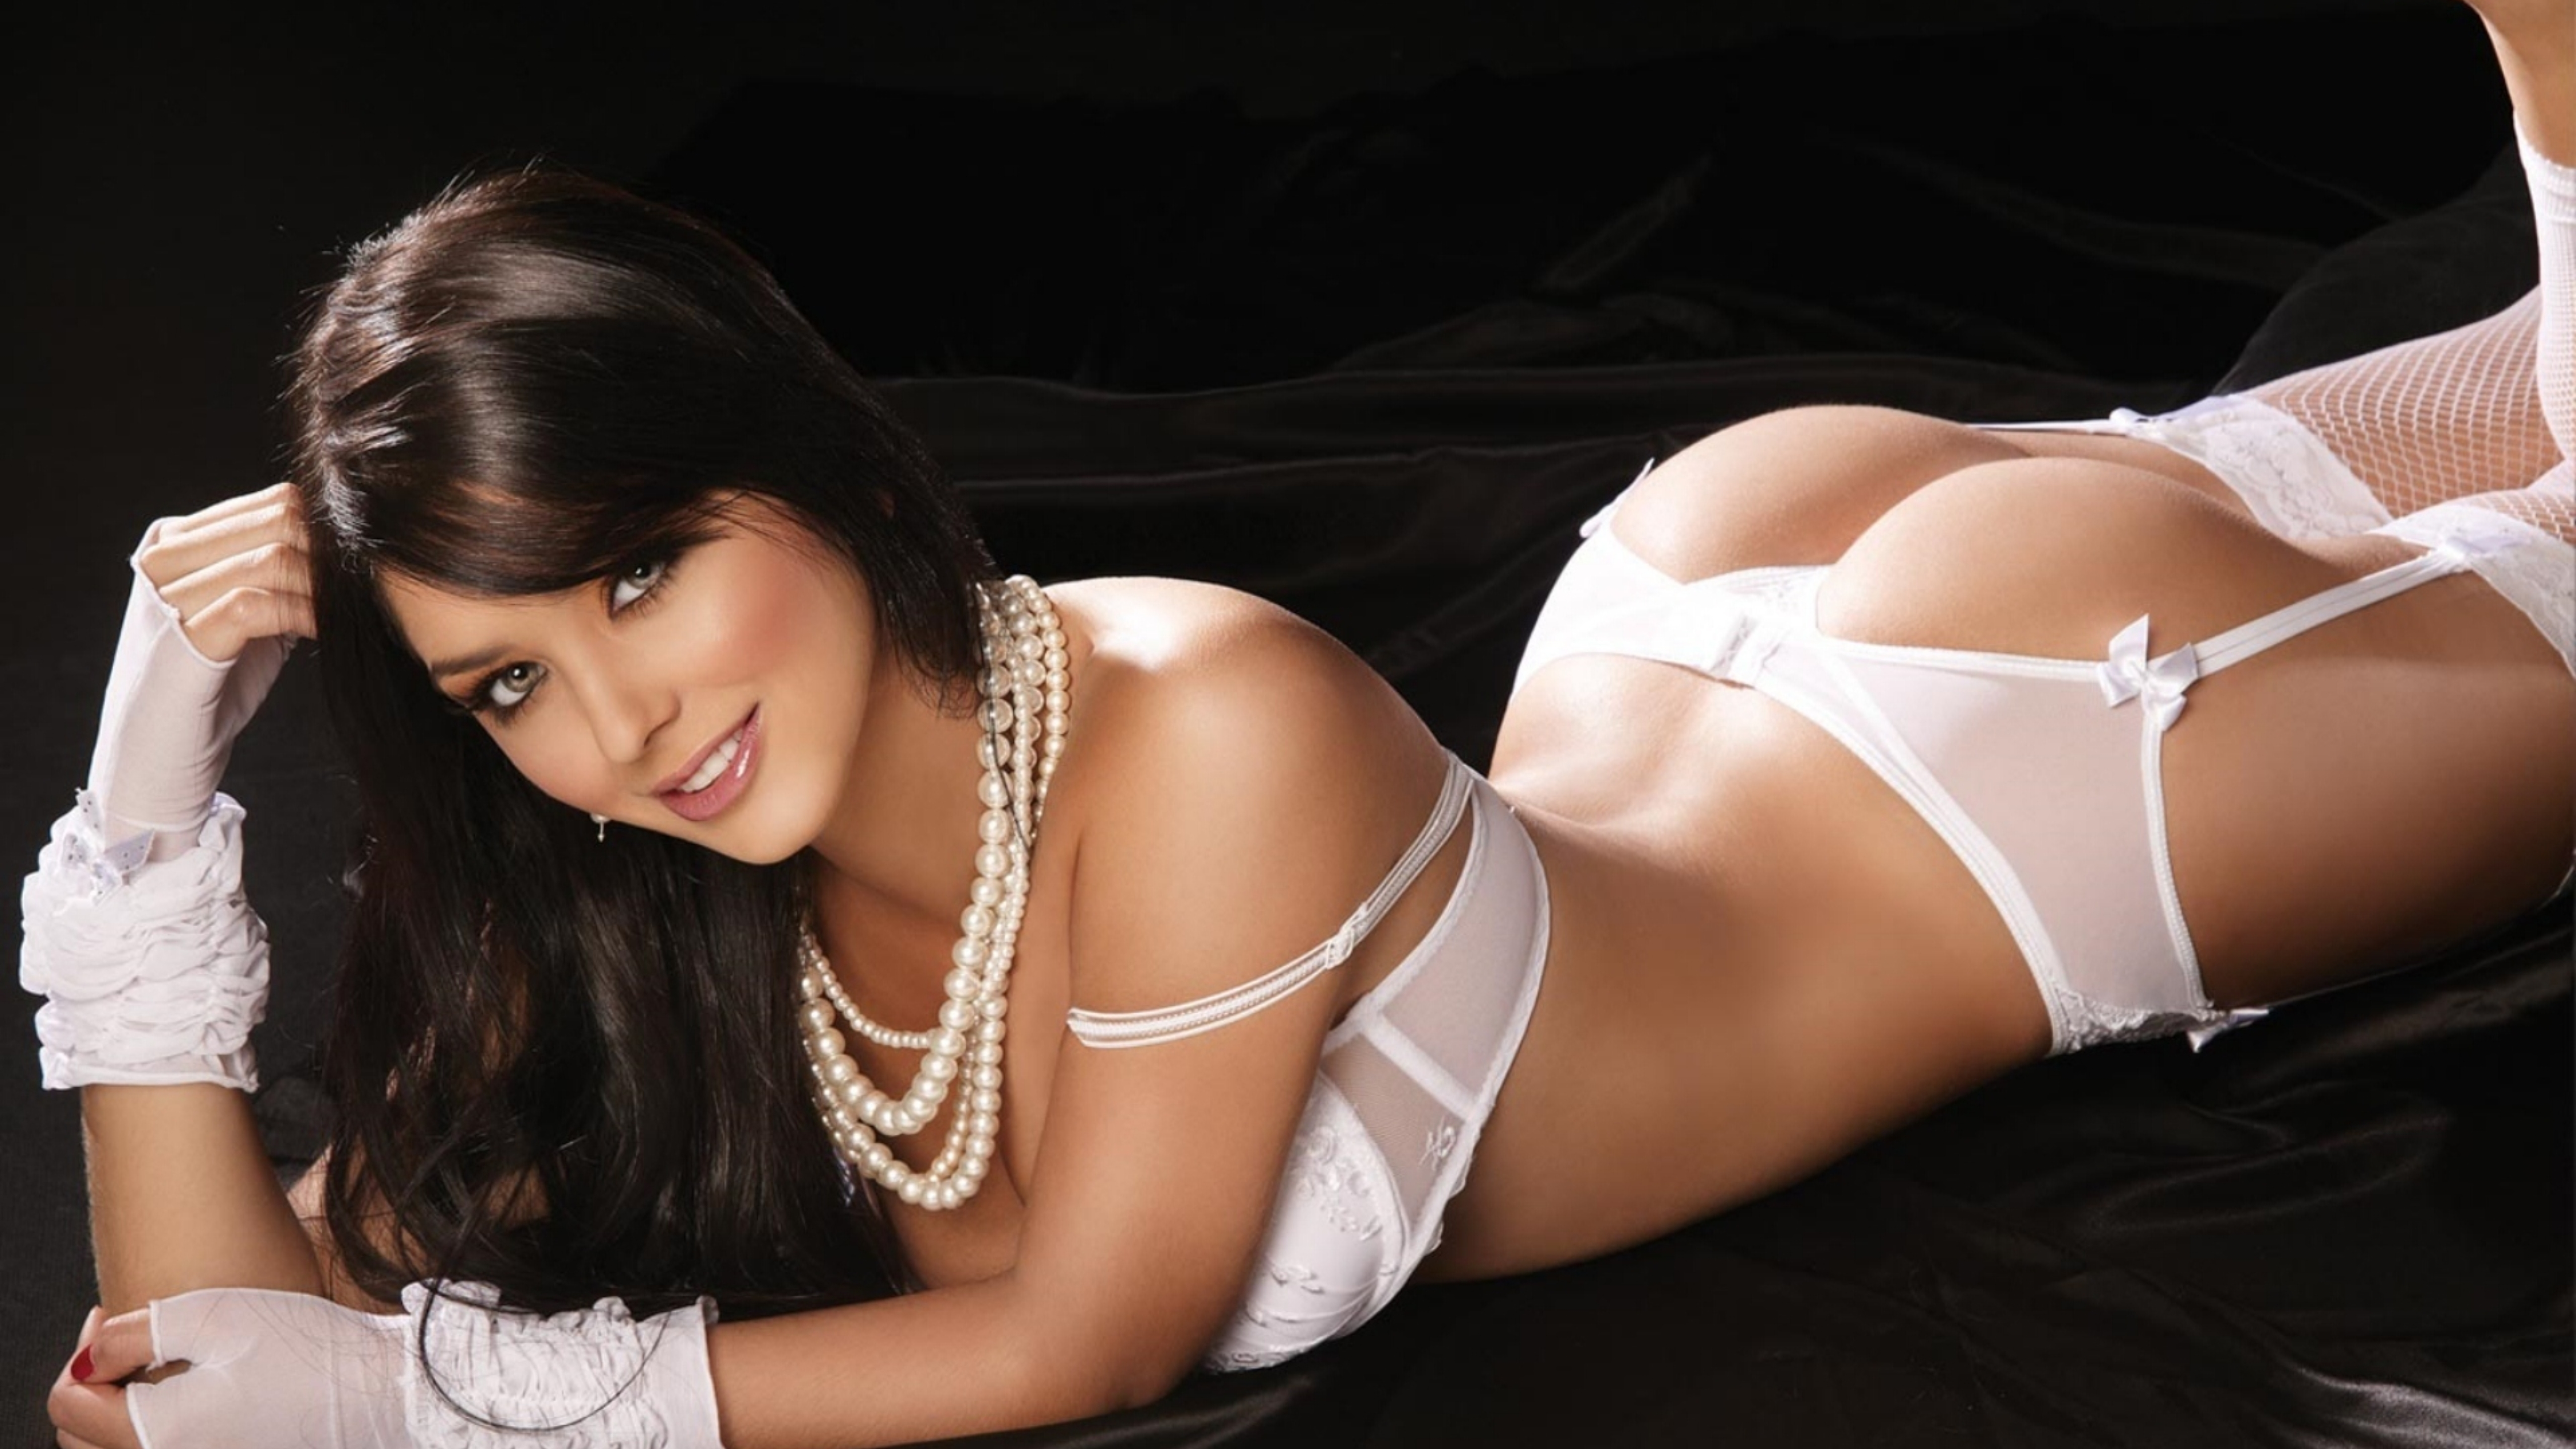 hot girl in sexy pose